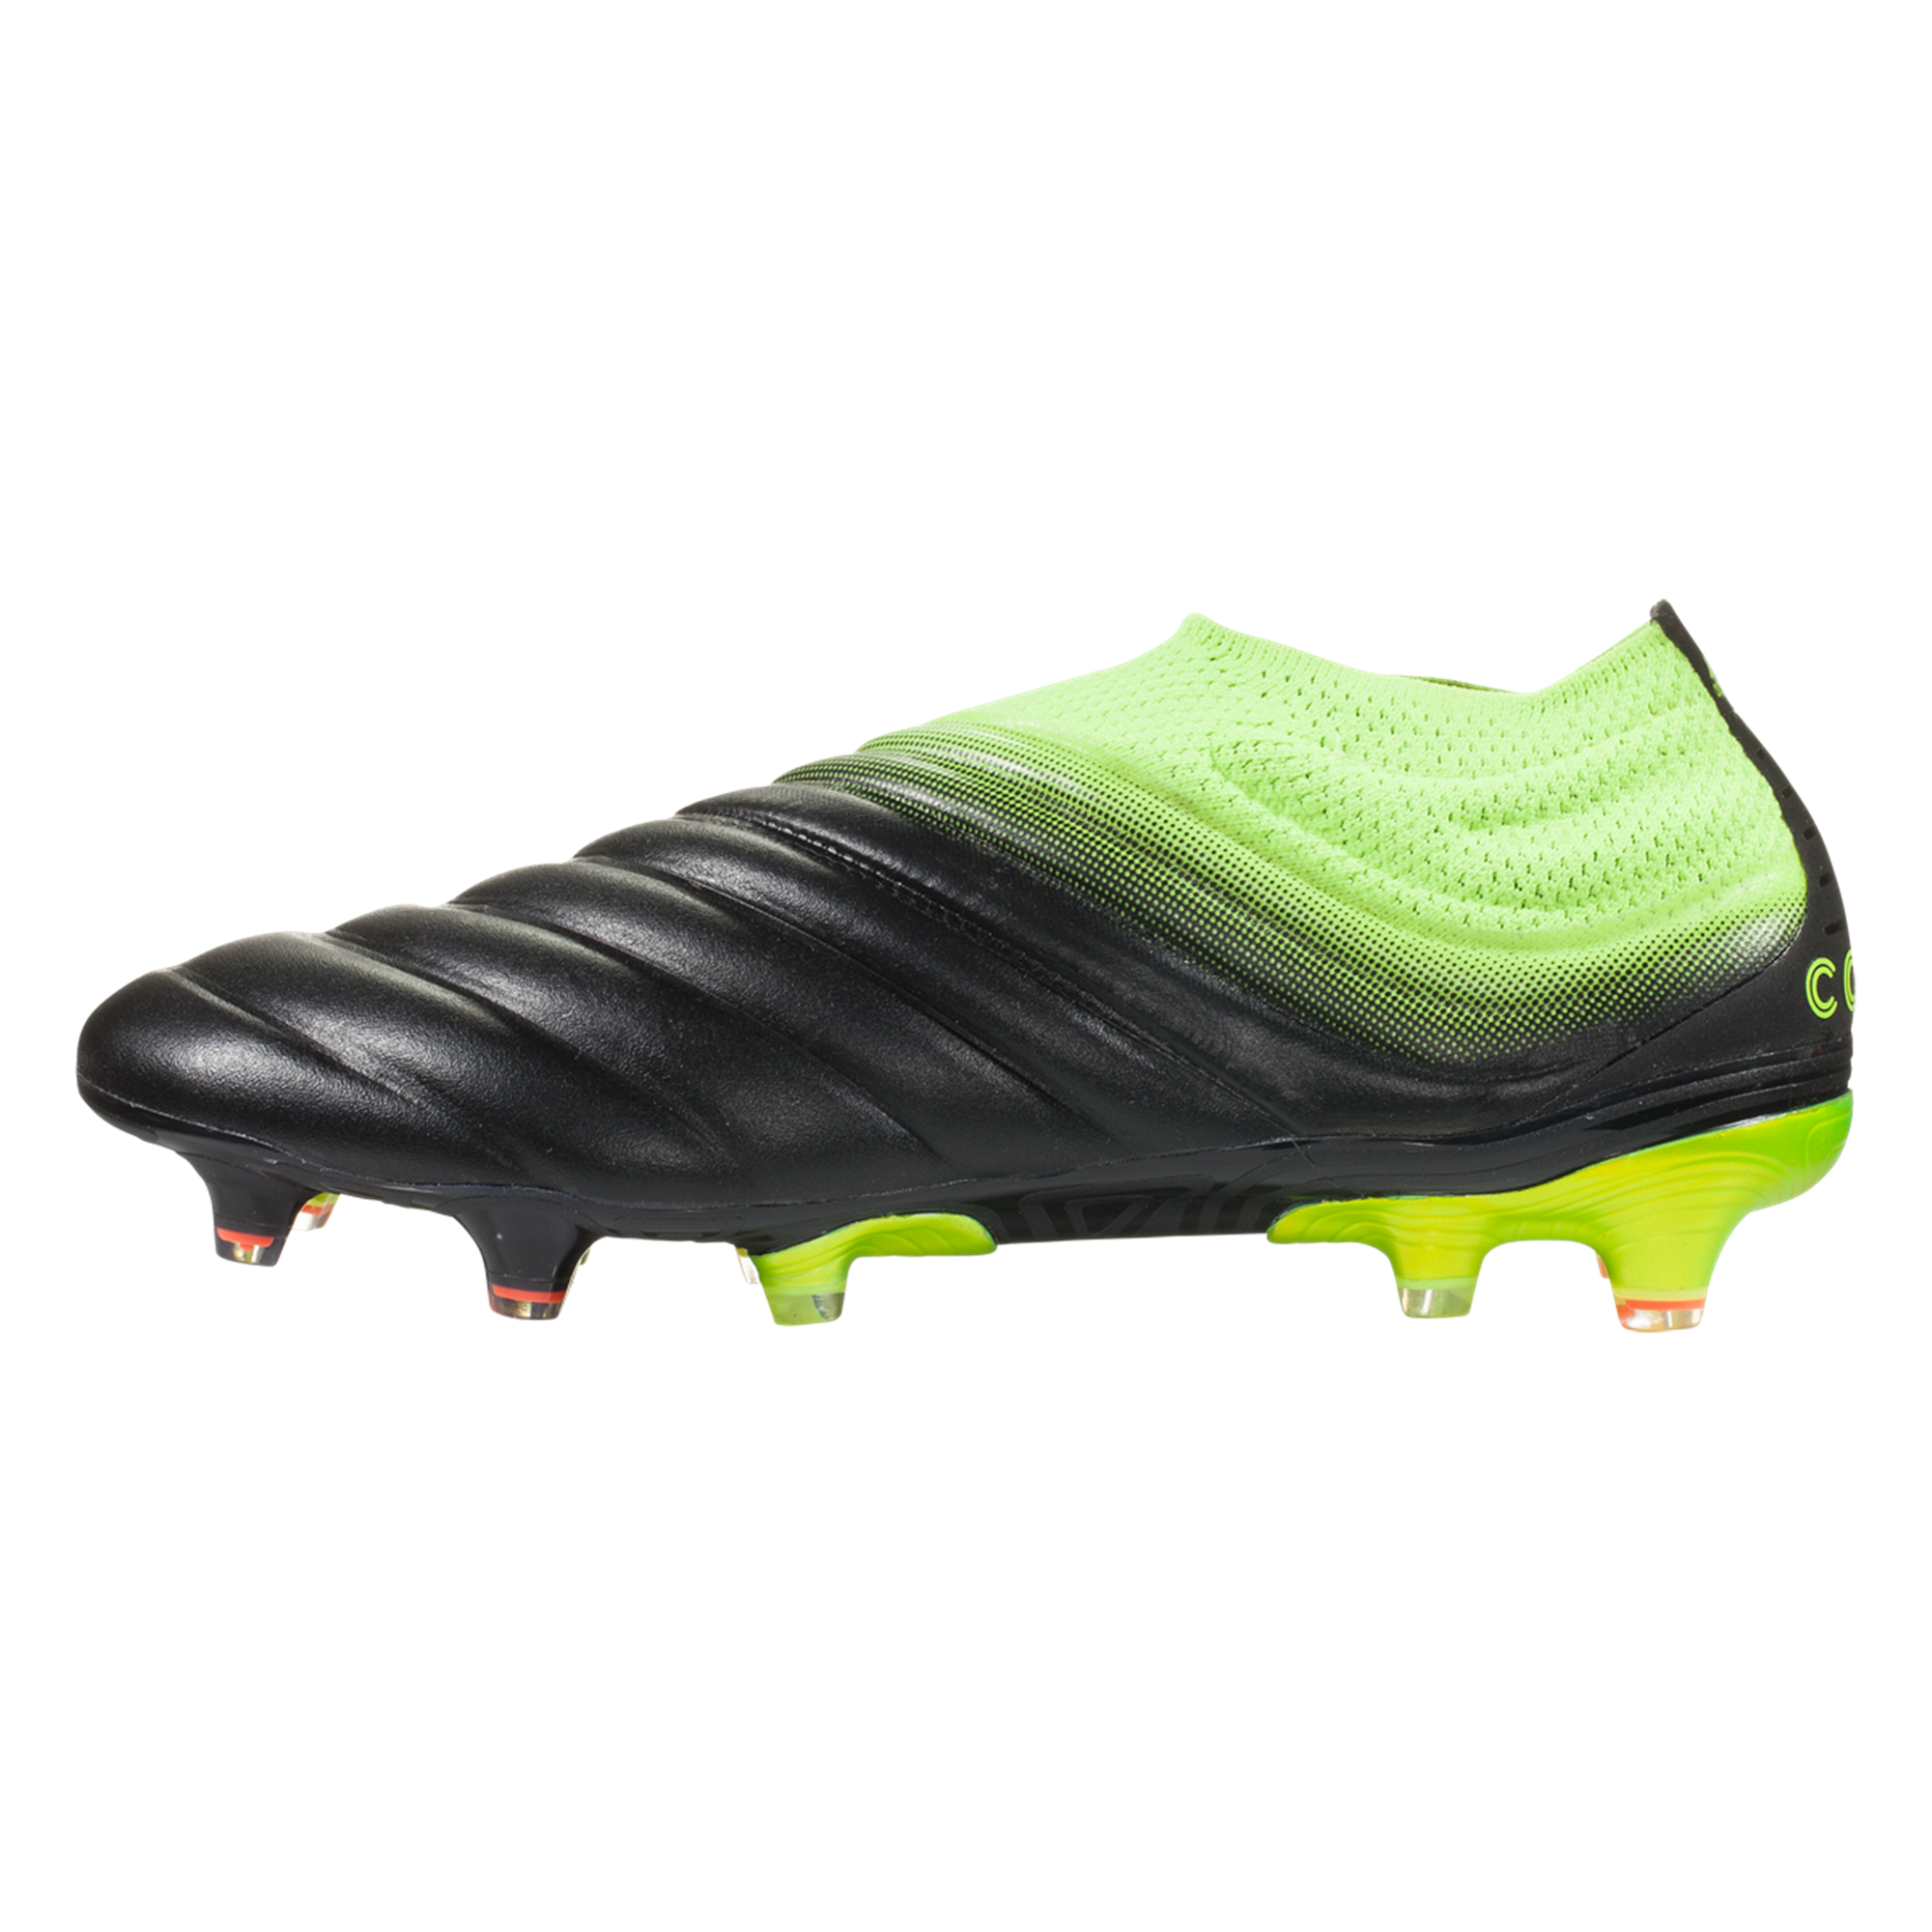 Adidas Copa 19 Fg Firm Ground Soccer Cleat Black Yellow Black Soccer Cleats Cleats Yellow Black